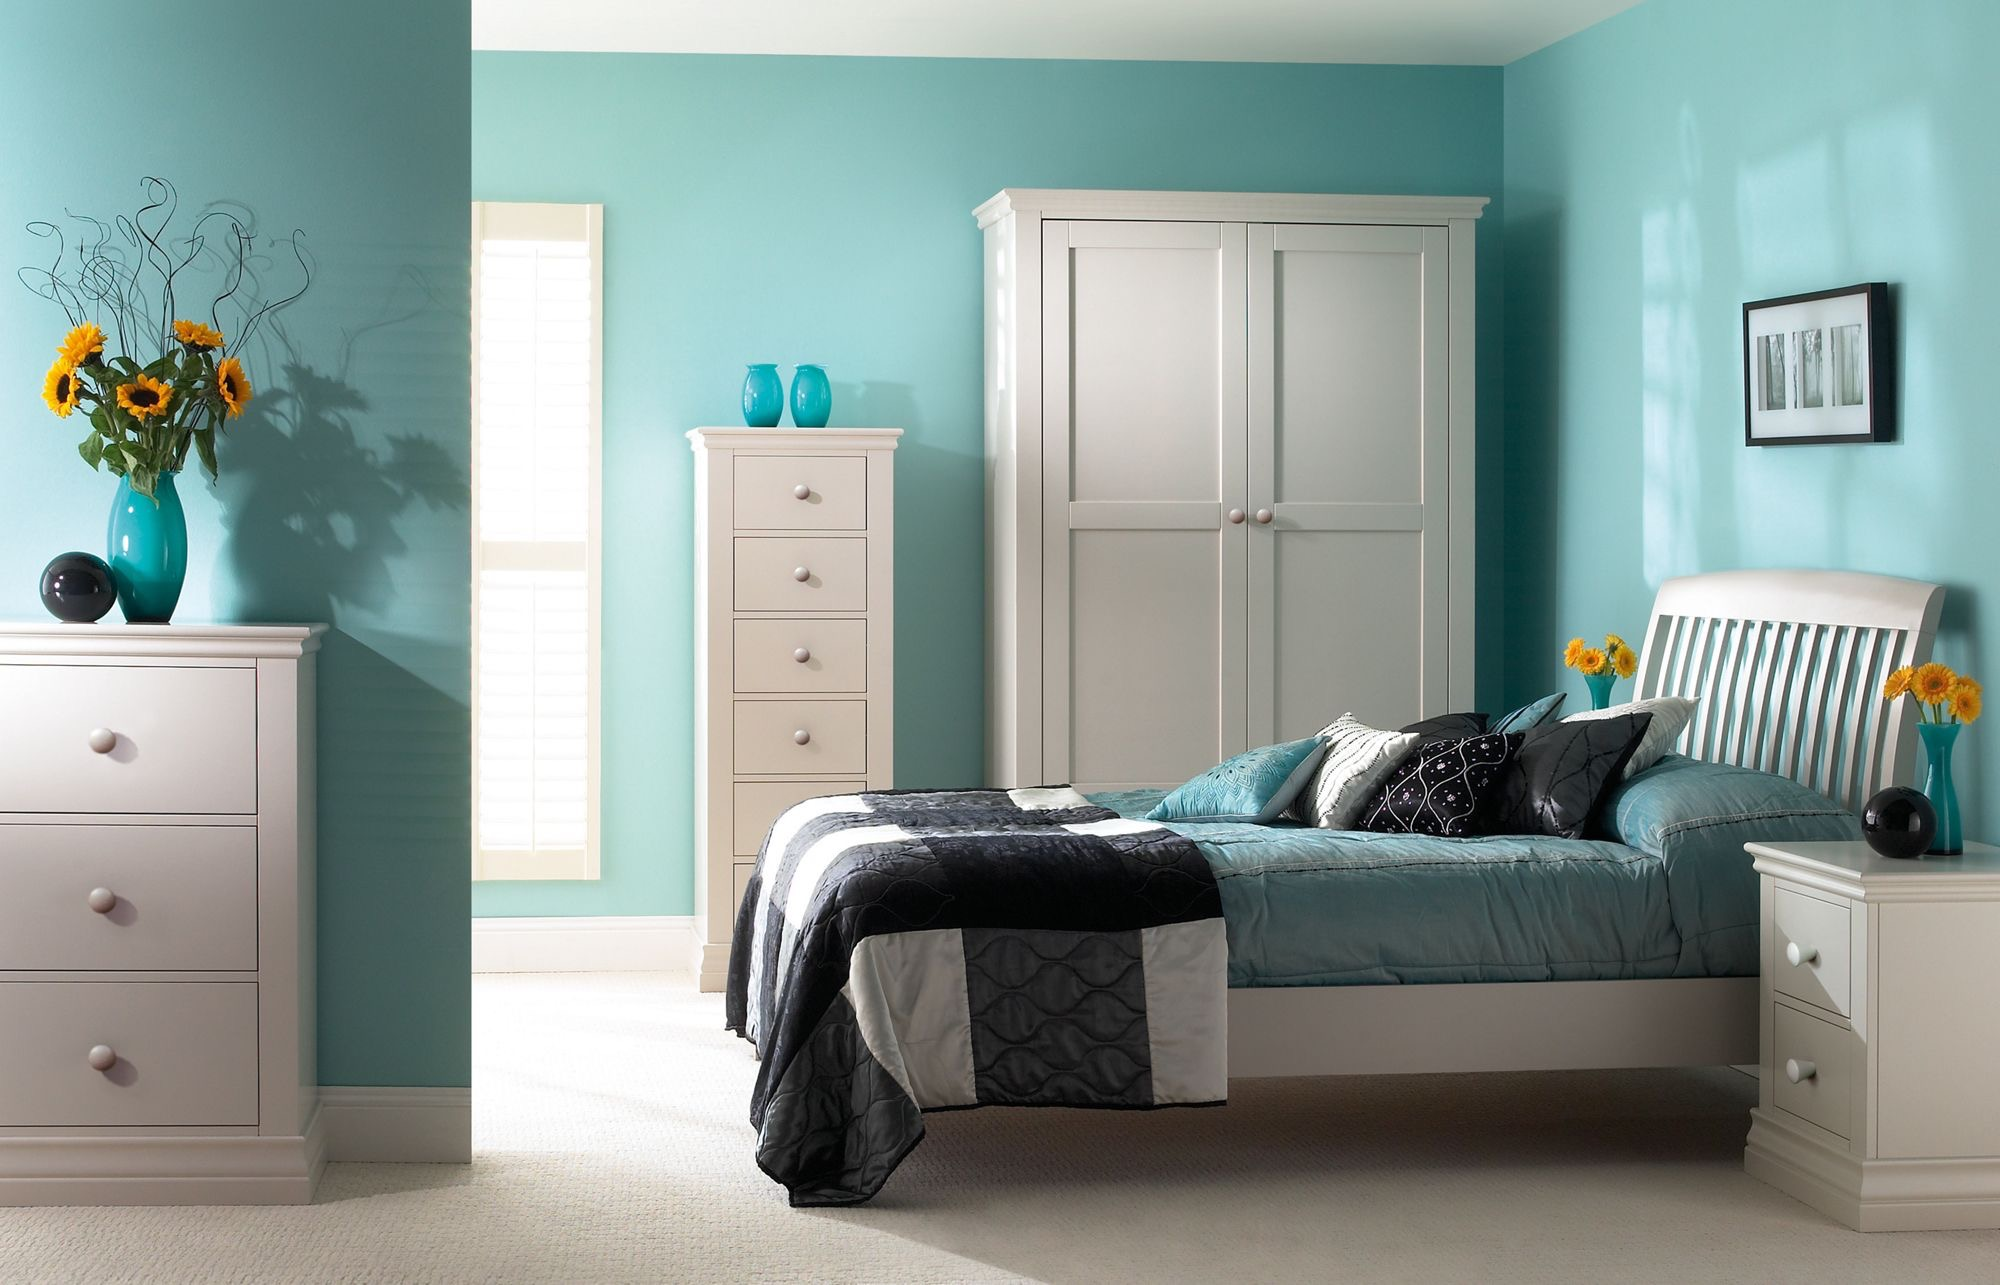 bedroom-designs-and-colors-with-marvelous-simple-wall-designs-for-master-bedroom-on-bedroom-with-turquoise-simple-master-bedroom-color-wall-design-decorating-ideas-idea.jpg